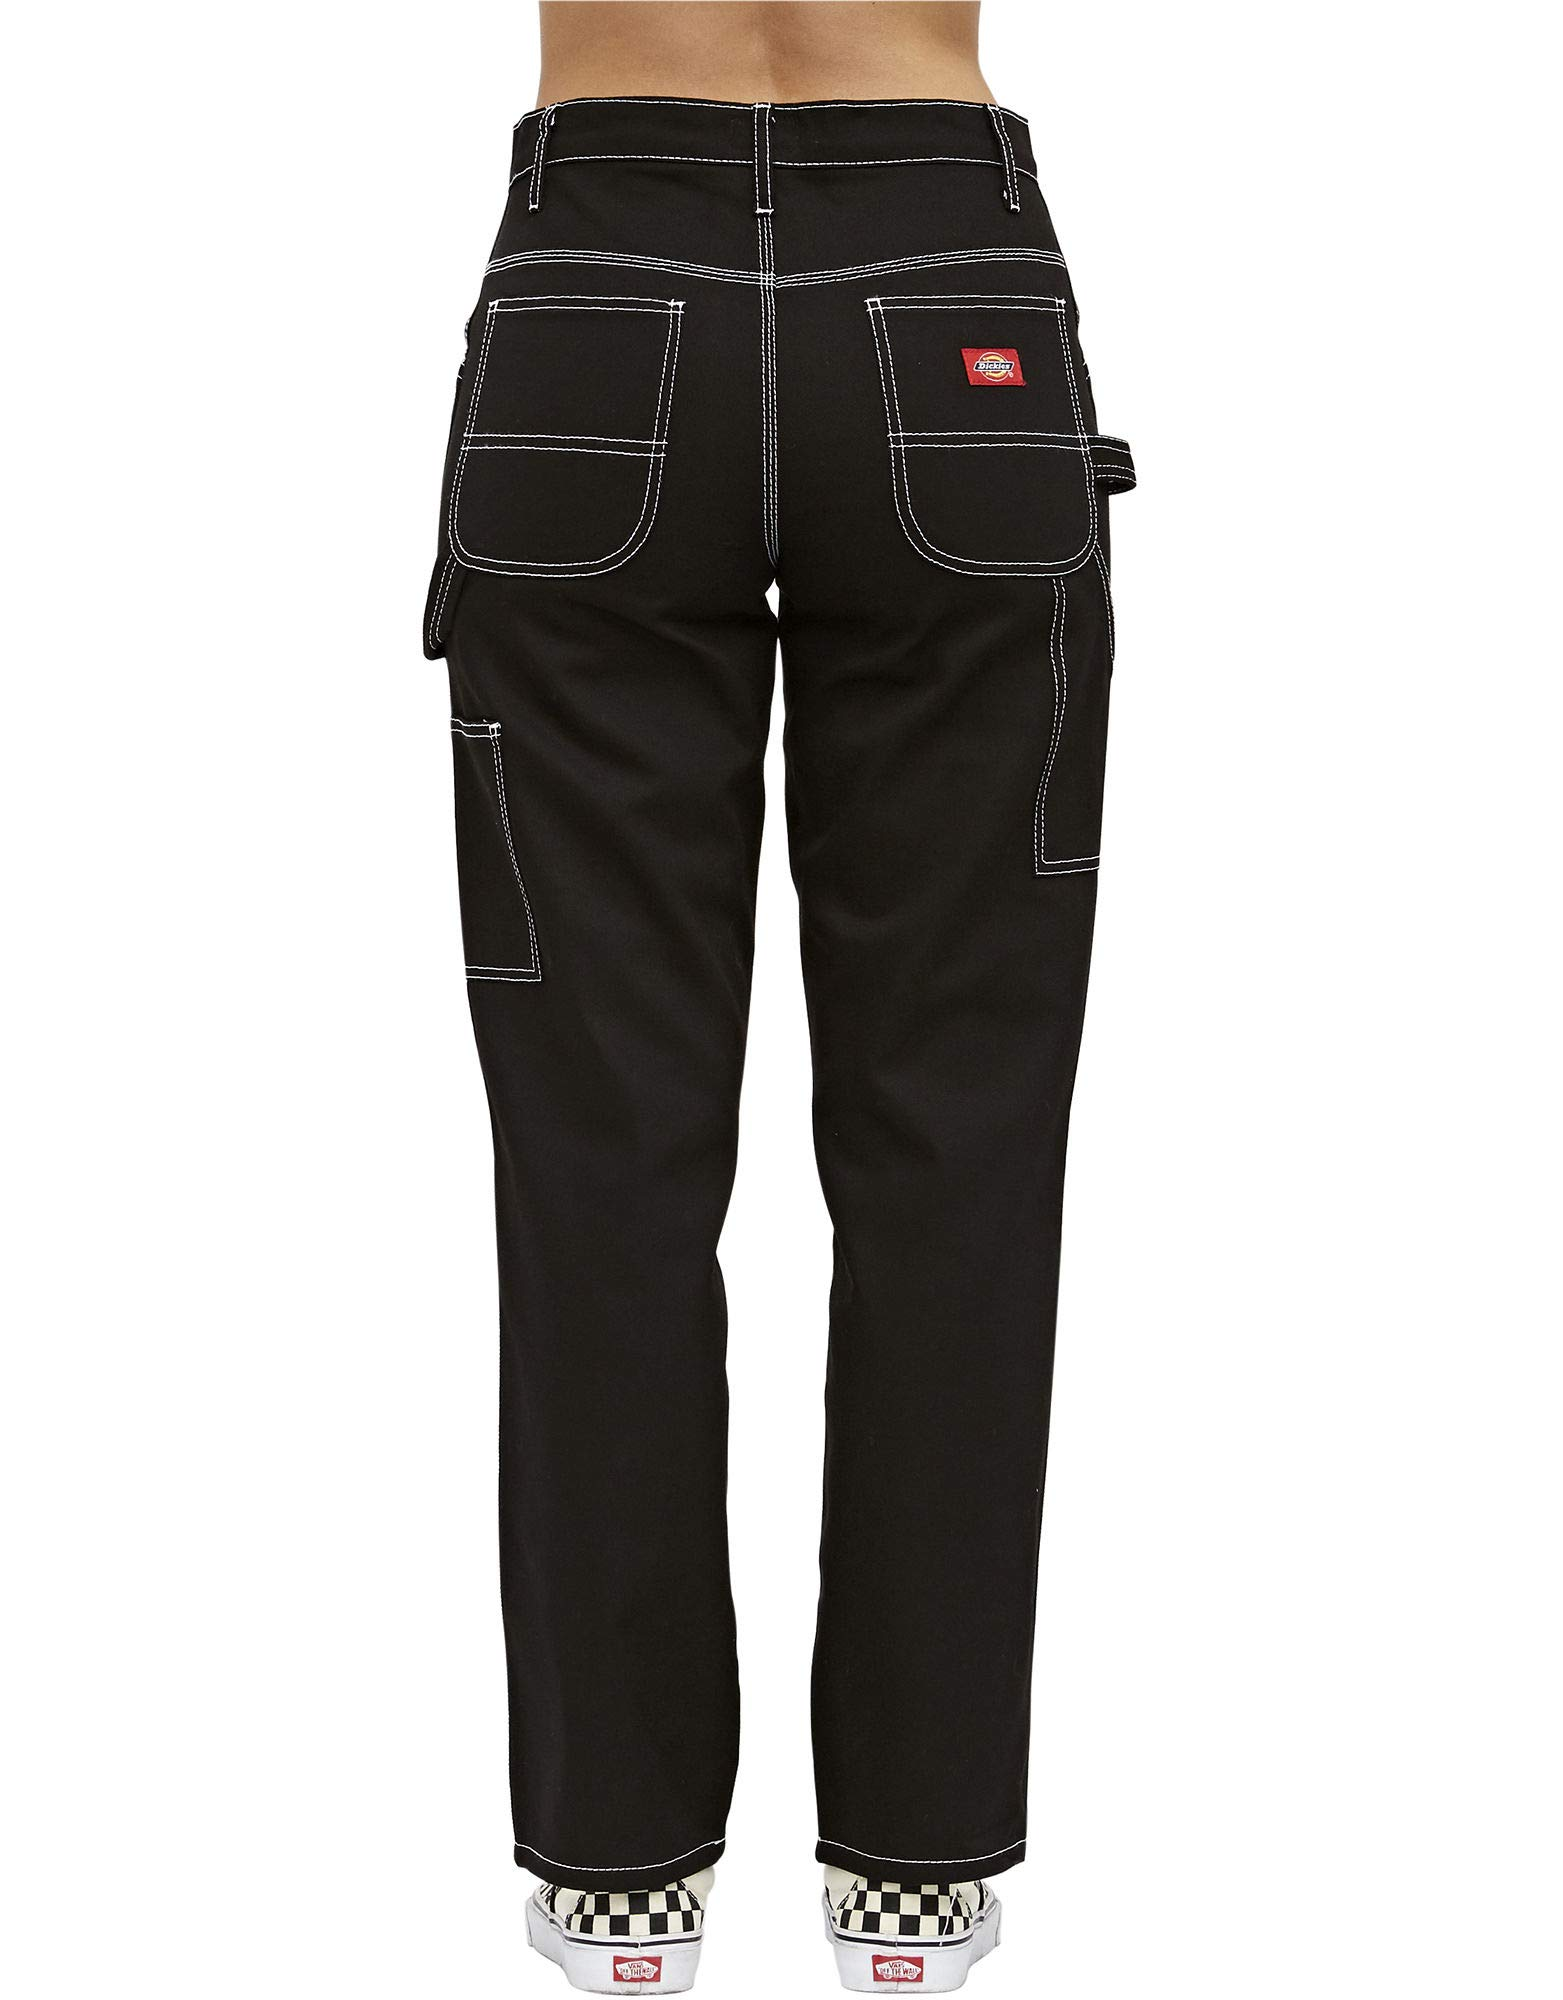 Dickies Girl Juniors' Relaxed Fit High-Rise Twill Carpenter Pants (Black, 5) by Dickies (Image #2)